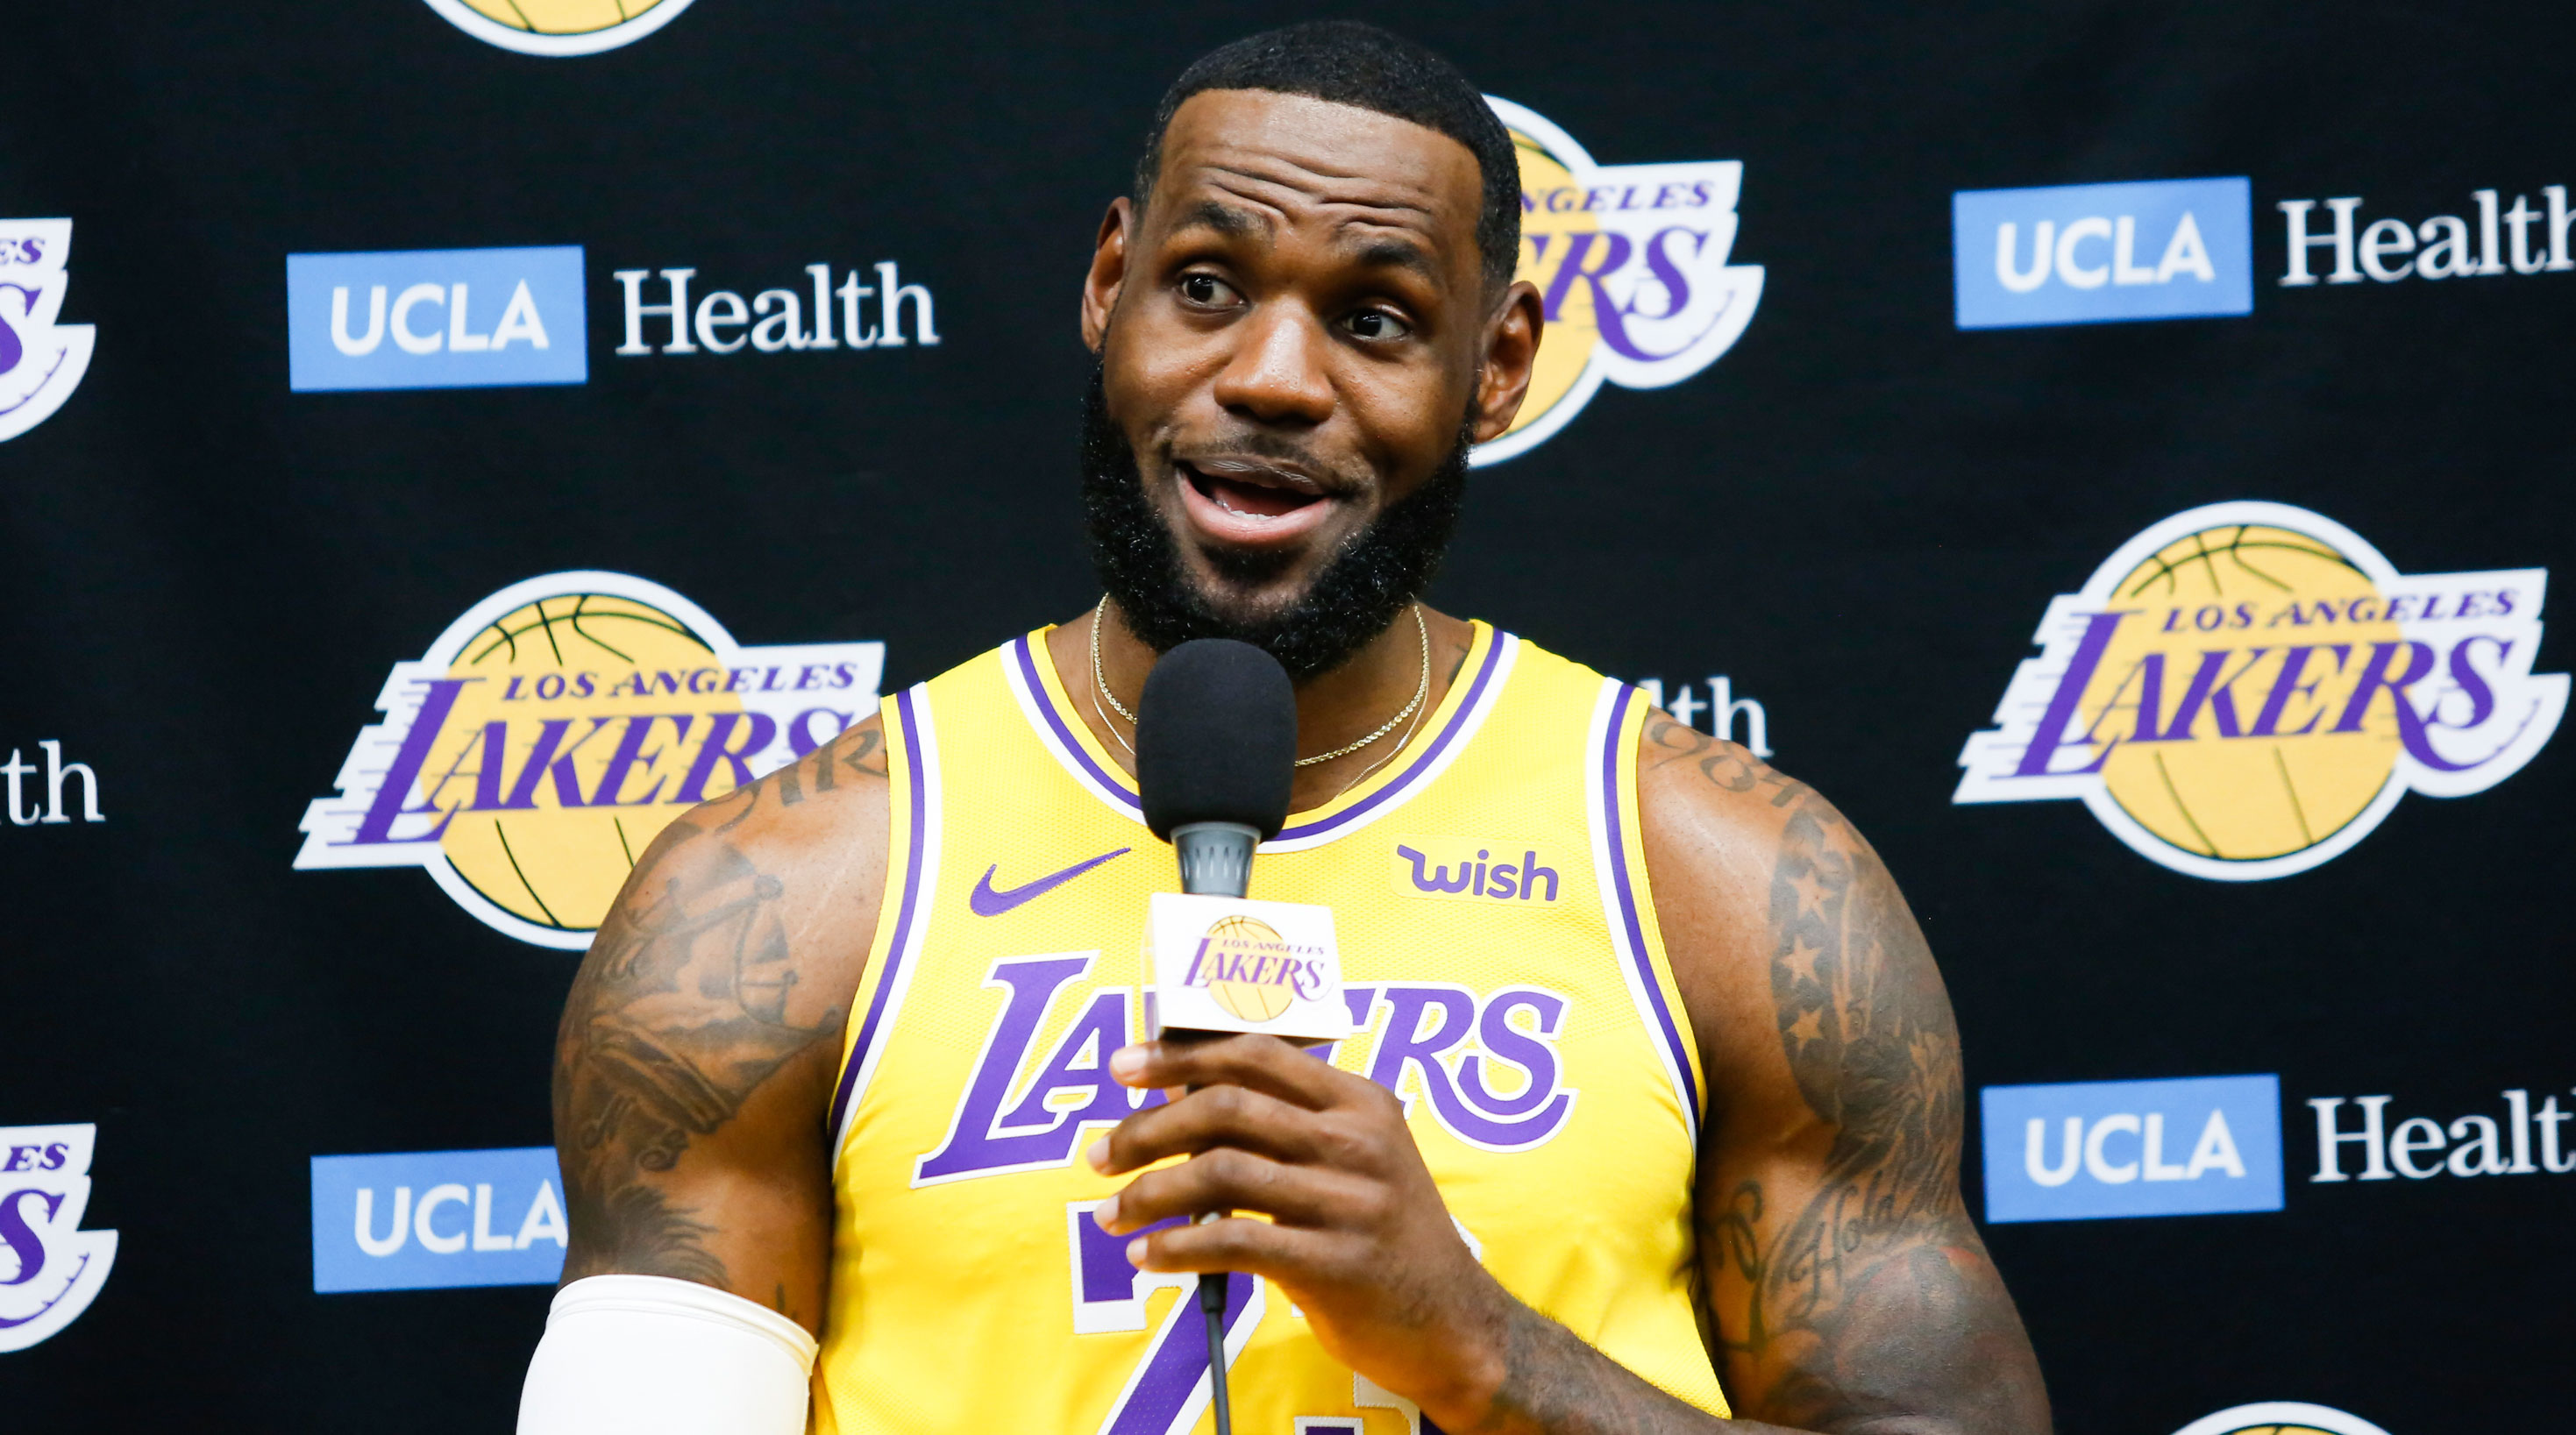 LeBron James talking at 2019 NBA Media Day